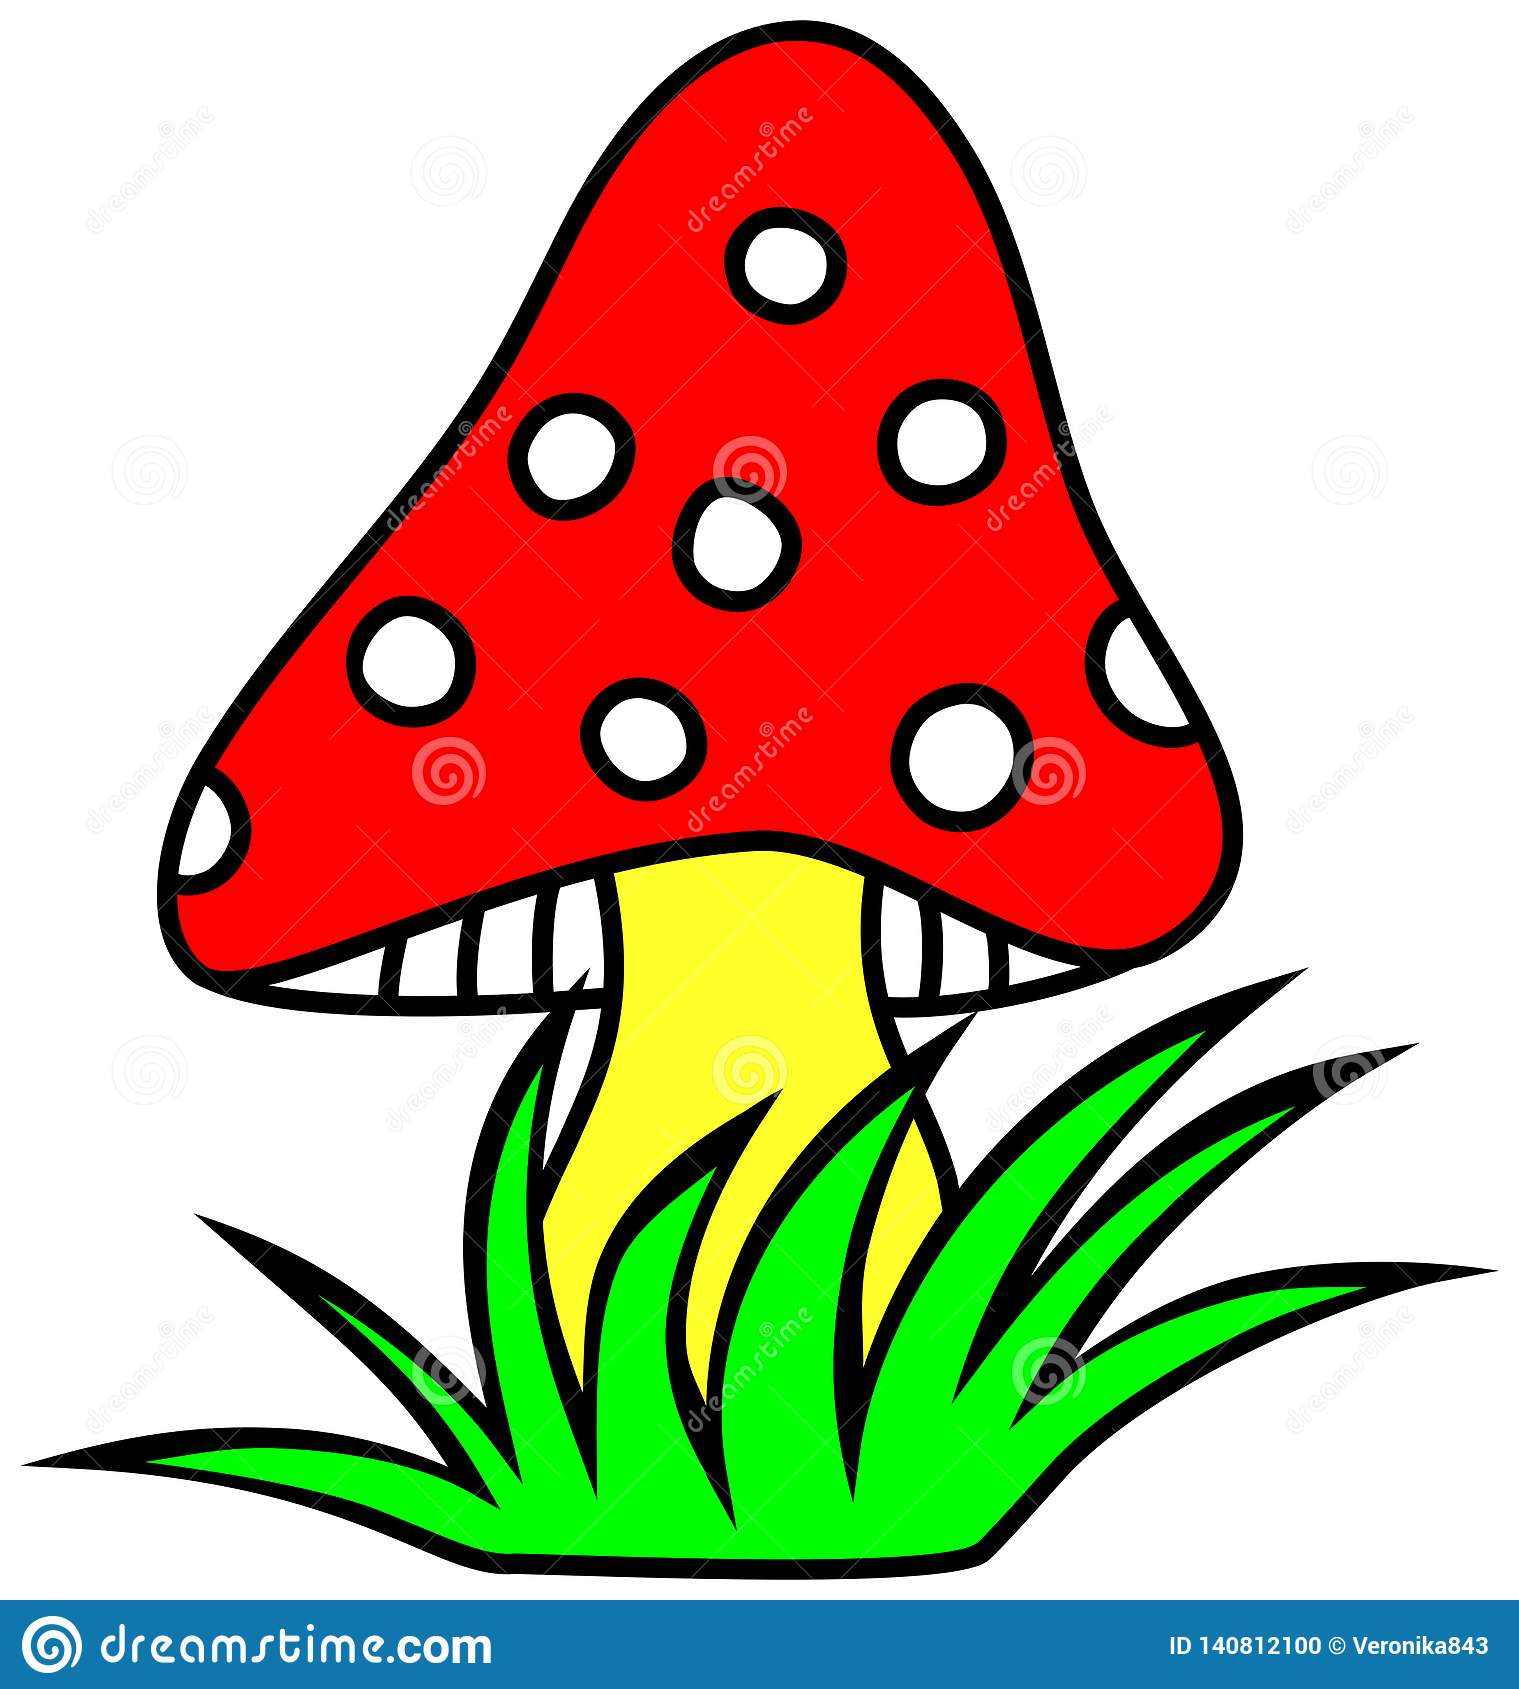 Mushroom Clipart. Sponge With A Red Hat. Stock Vector.